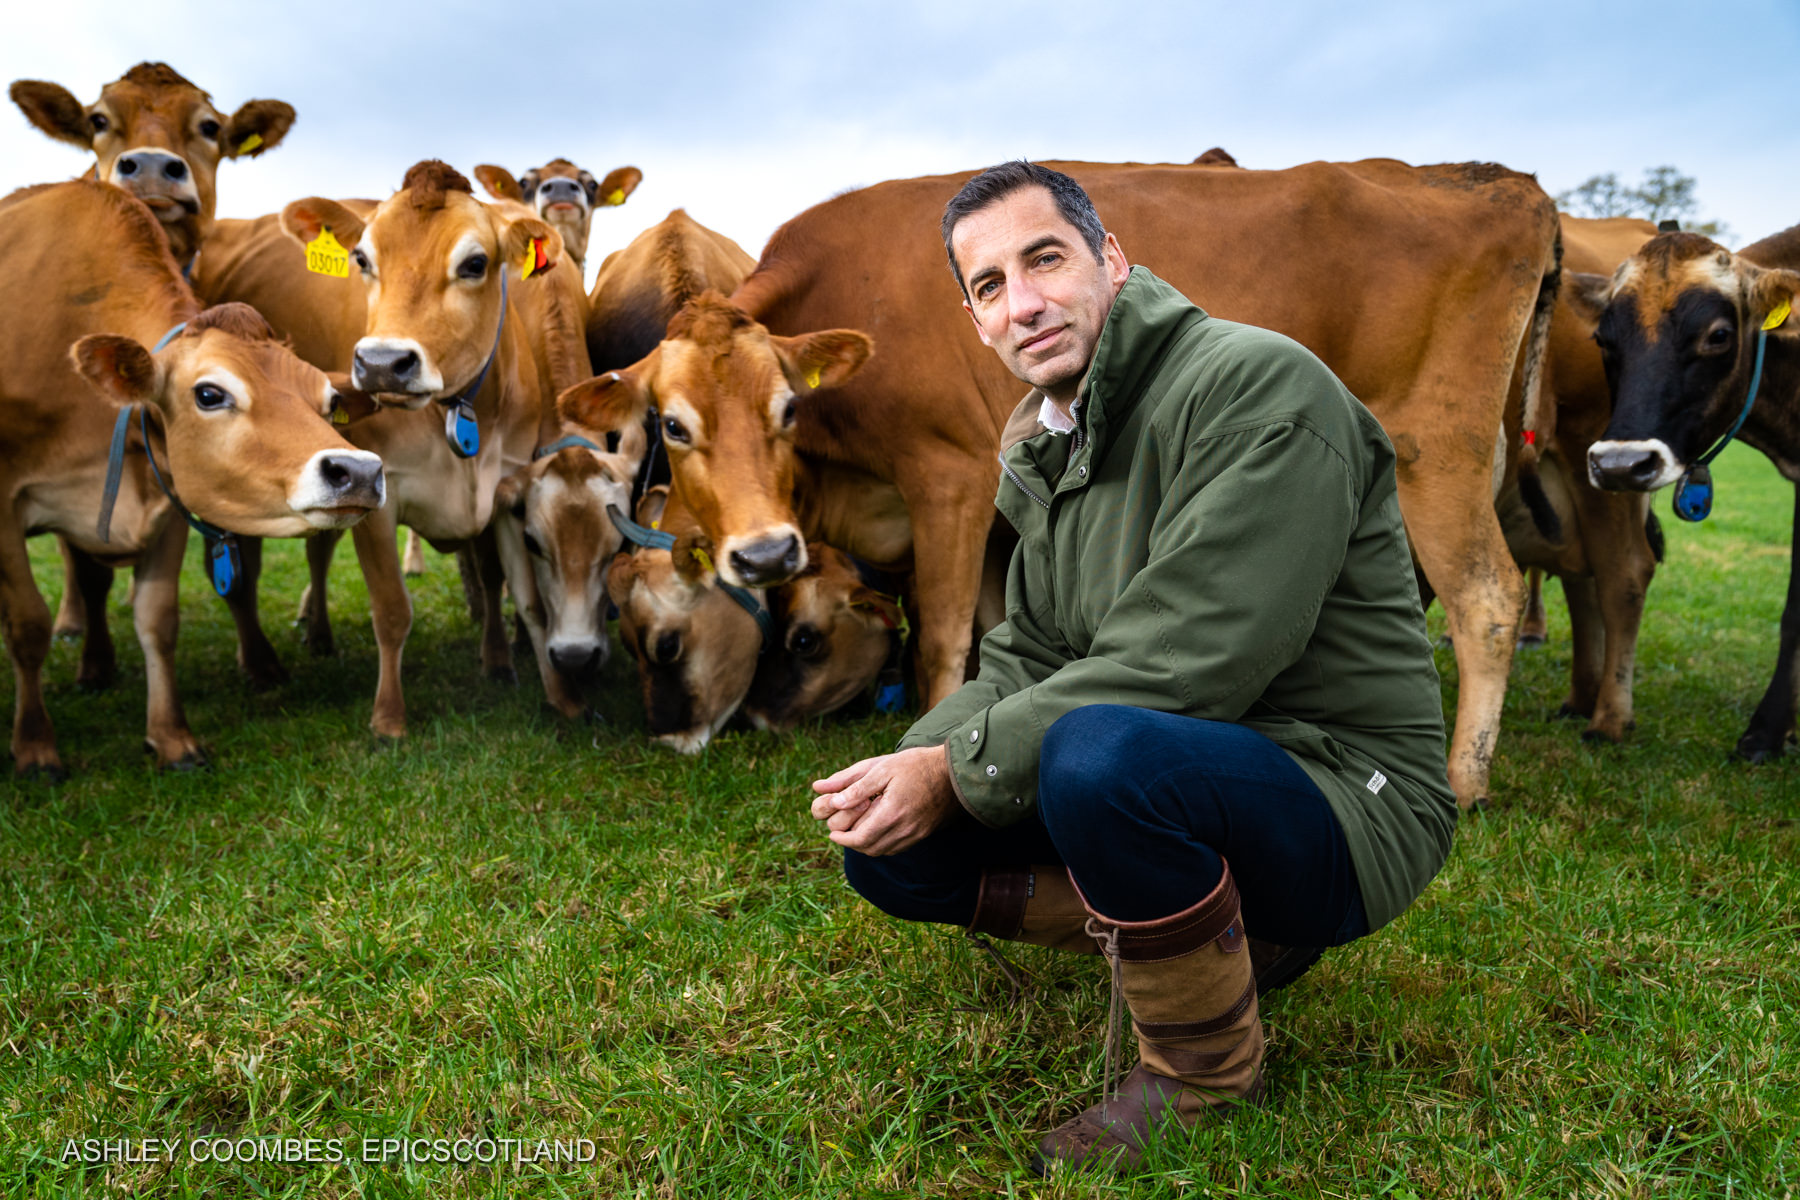 Business Portraits Graham's Family Dairy Epic Scotland Photography